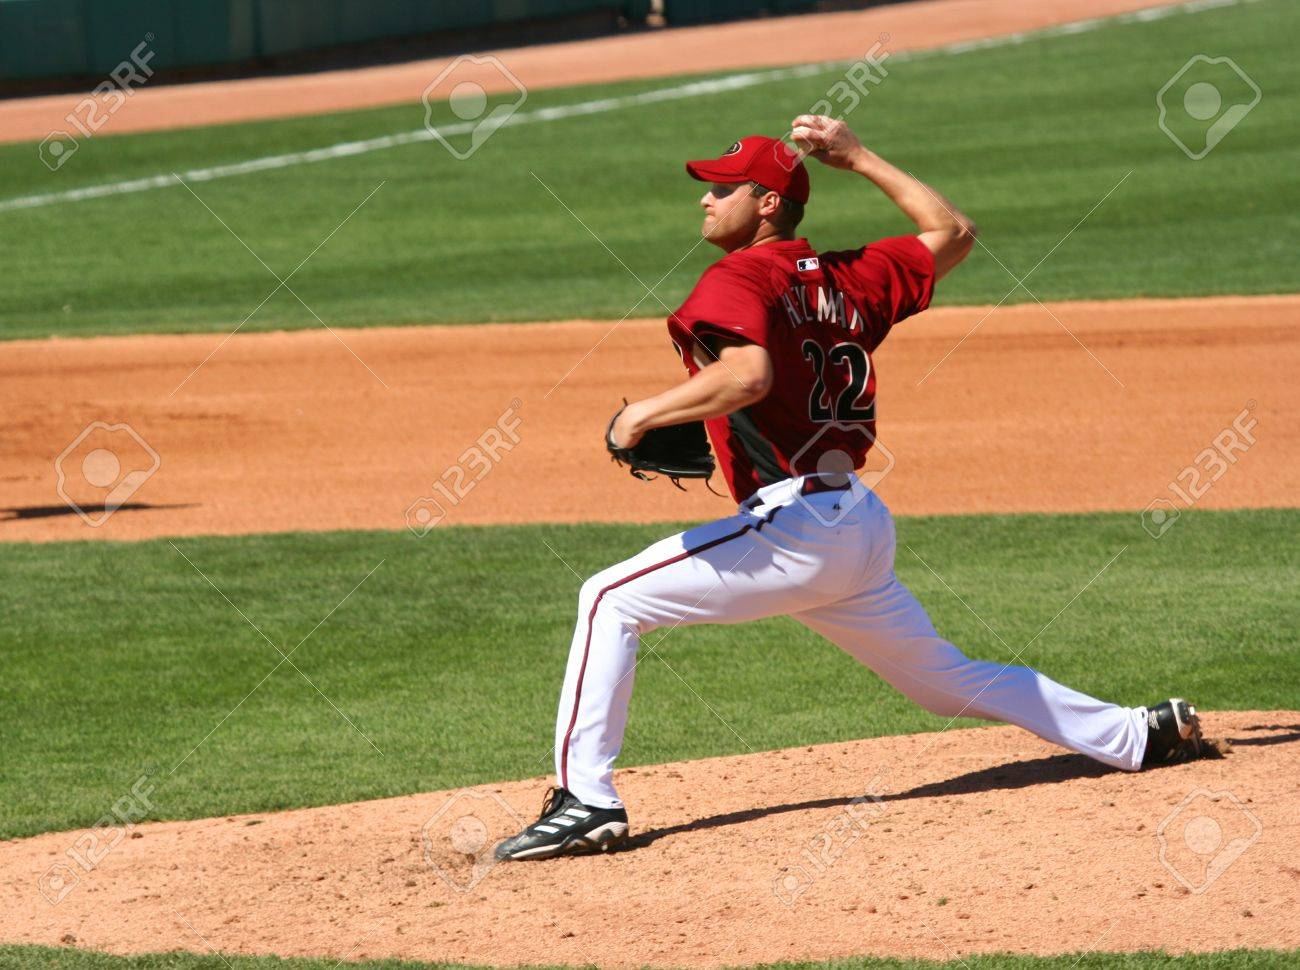 Arizona Diamondbacks pitcher Aaron Heilman in a game against the Los Angeles Angels on March 11, 2010, at Tucson Electric Park in Tucson, Arizona, during spring training. Stock Photo - 6890484